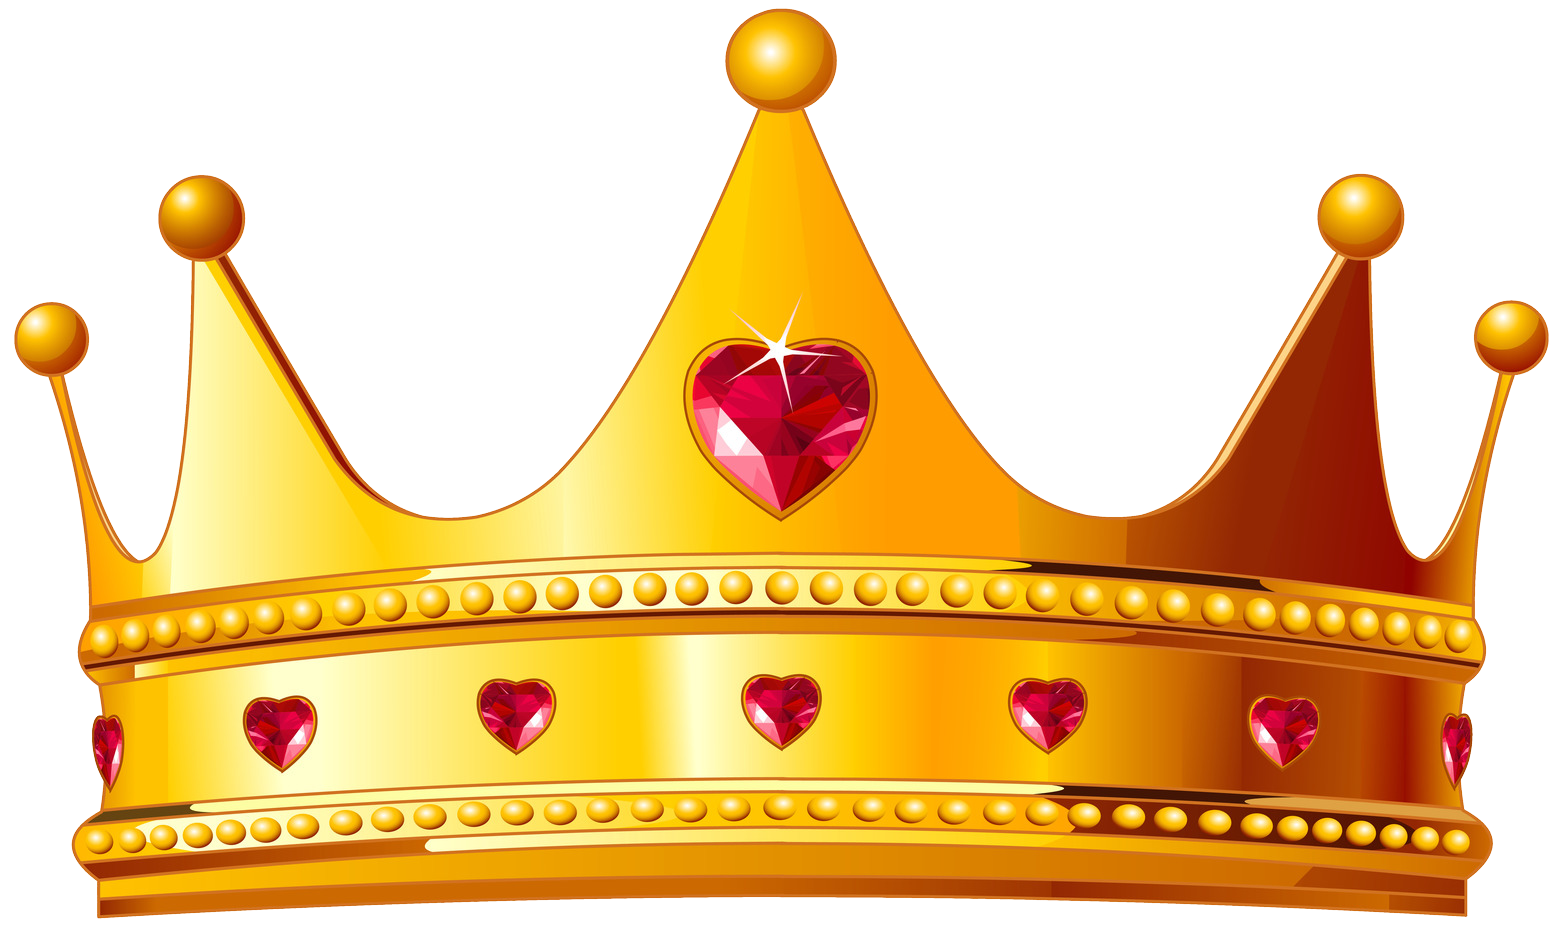 Crown clip art transparent background. Full hd png